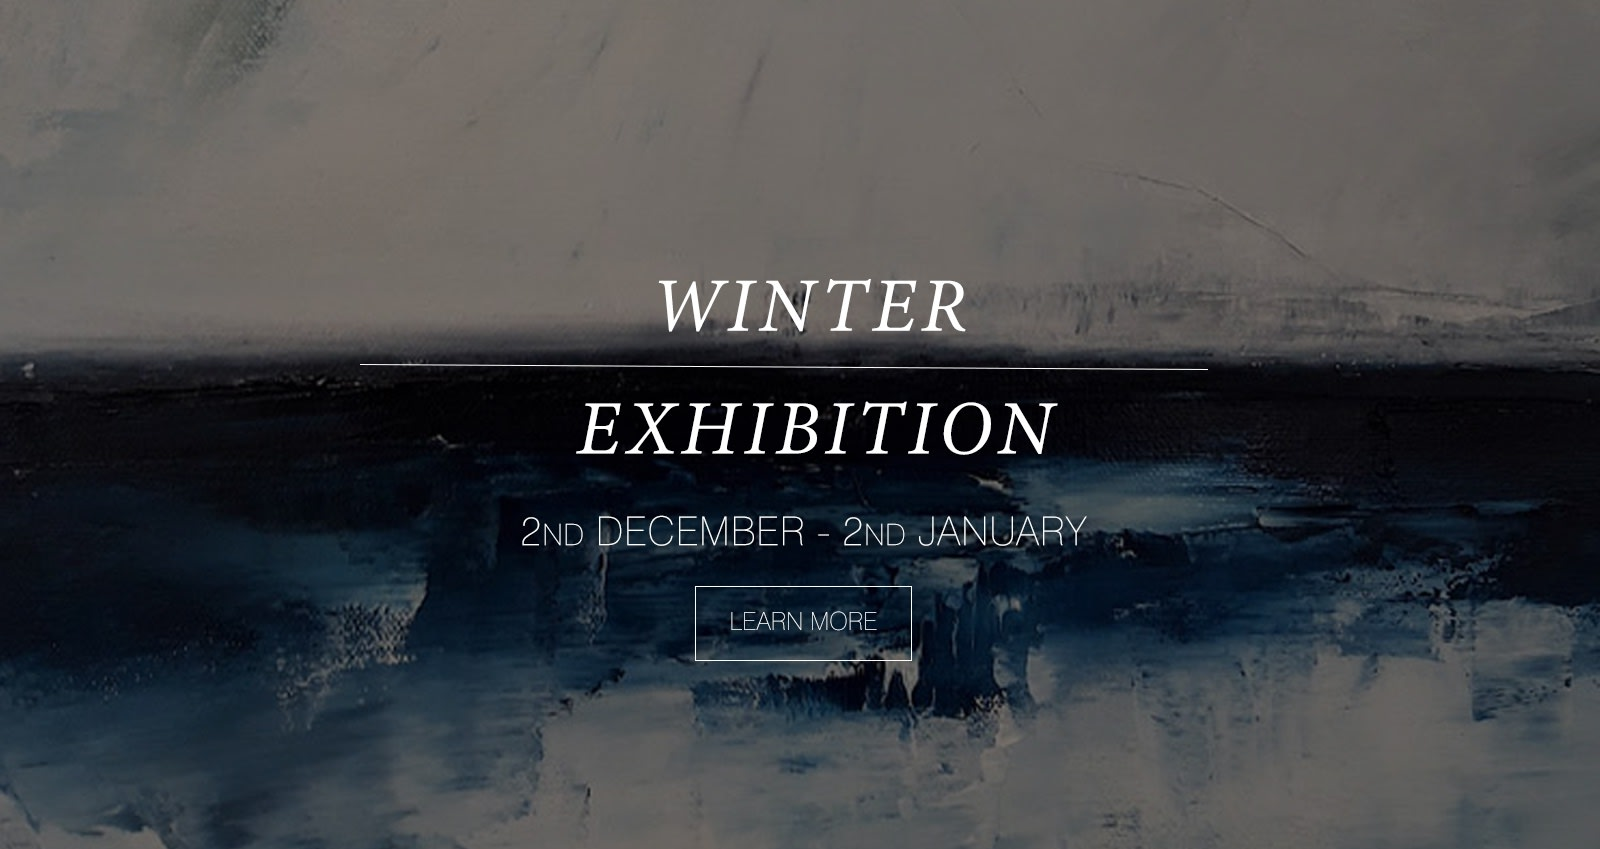 The Winter Exhibition